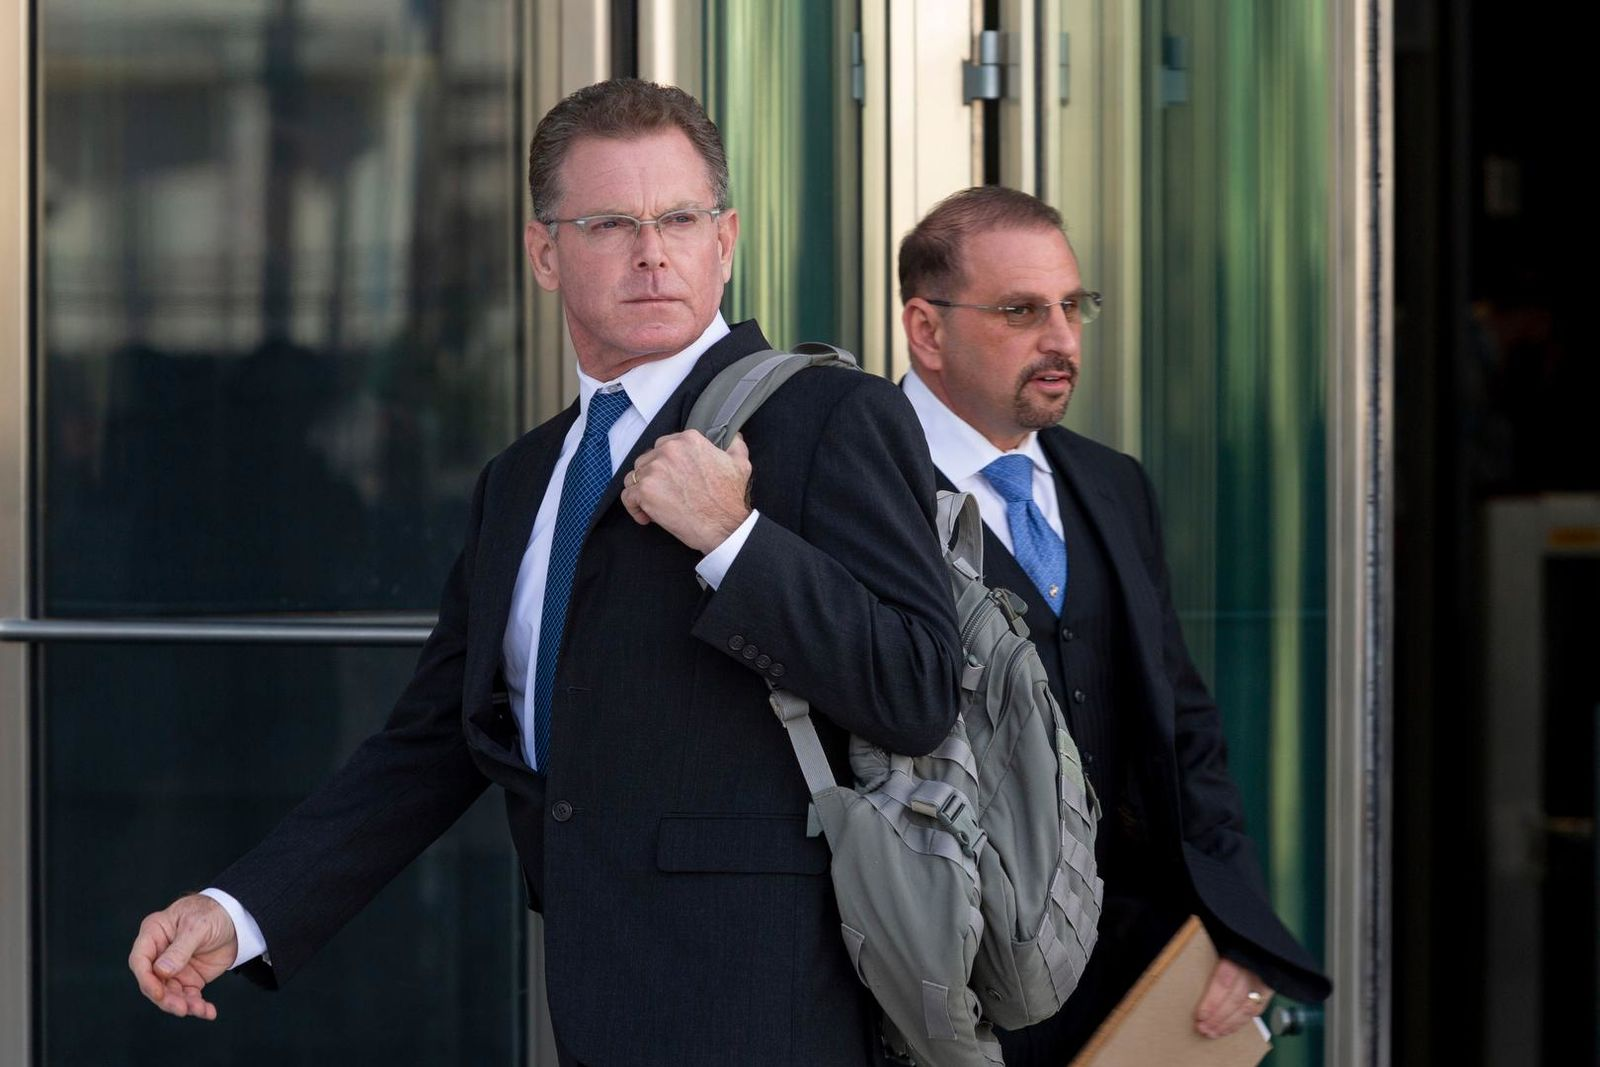 Douglas Haig, left, and his attorney Marc Victor leave the Lloyd George Federal Courthouse, Tuesday Nov. 19, 2019, in Las Vegas, after pleading guilty to illegally manufacturing tracer and armor-piercing bullets found in a high-rise hotel suite where a gunman took aim before the Las Vegas Strip massacre two years ago. Haig is a 57-year-old aerospace engineer who used to reload bullets at home in Mesa, Airz., and sell them at gun shows. He isn't accused of a direct role in the Oct. 1, 2017, shooting that killed 58 people and injured hundreds at an open-air music festival.(Elizabeth Page Brumley/Las Vegas Review-Journal via AP)